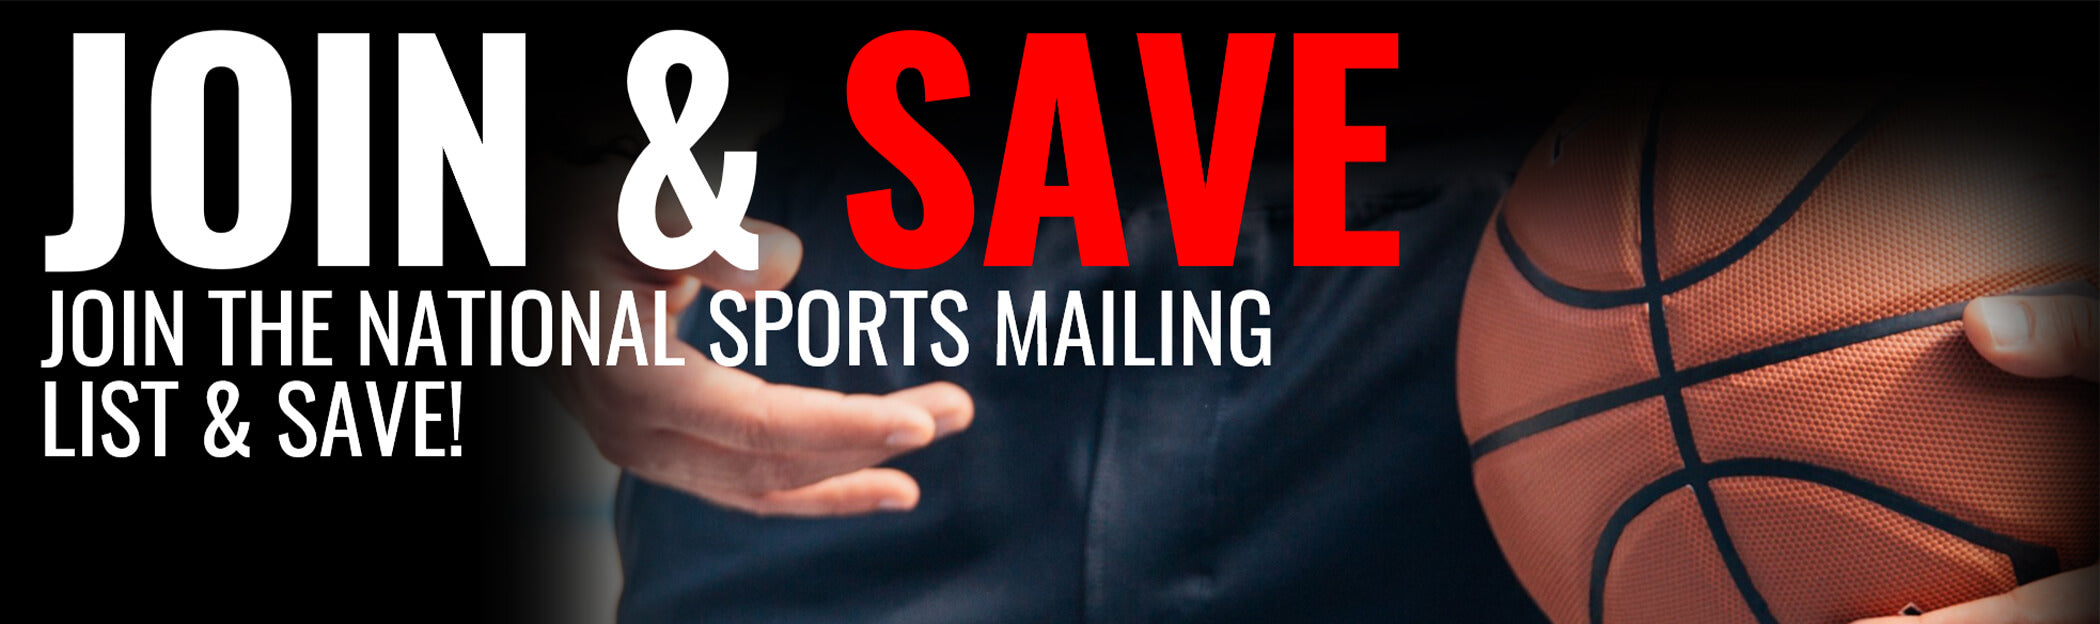 Join and save on the National Sports mailing list